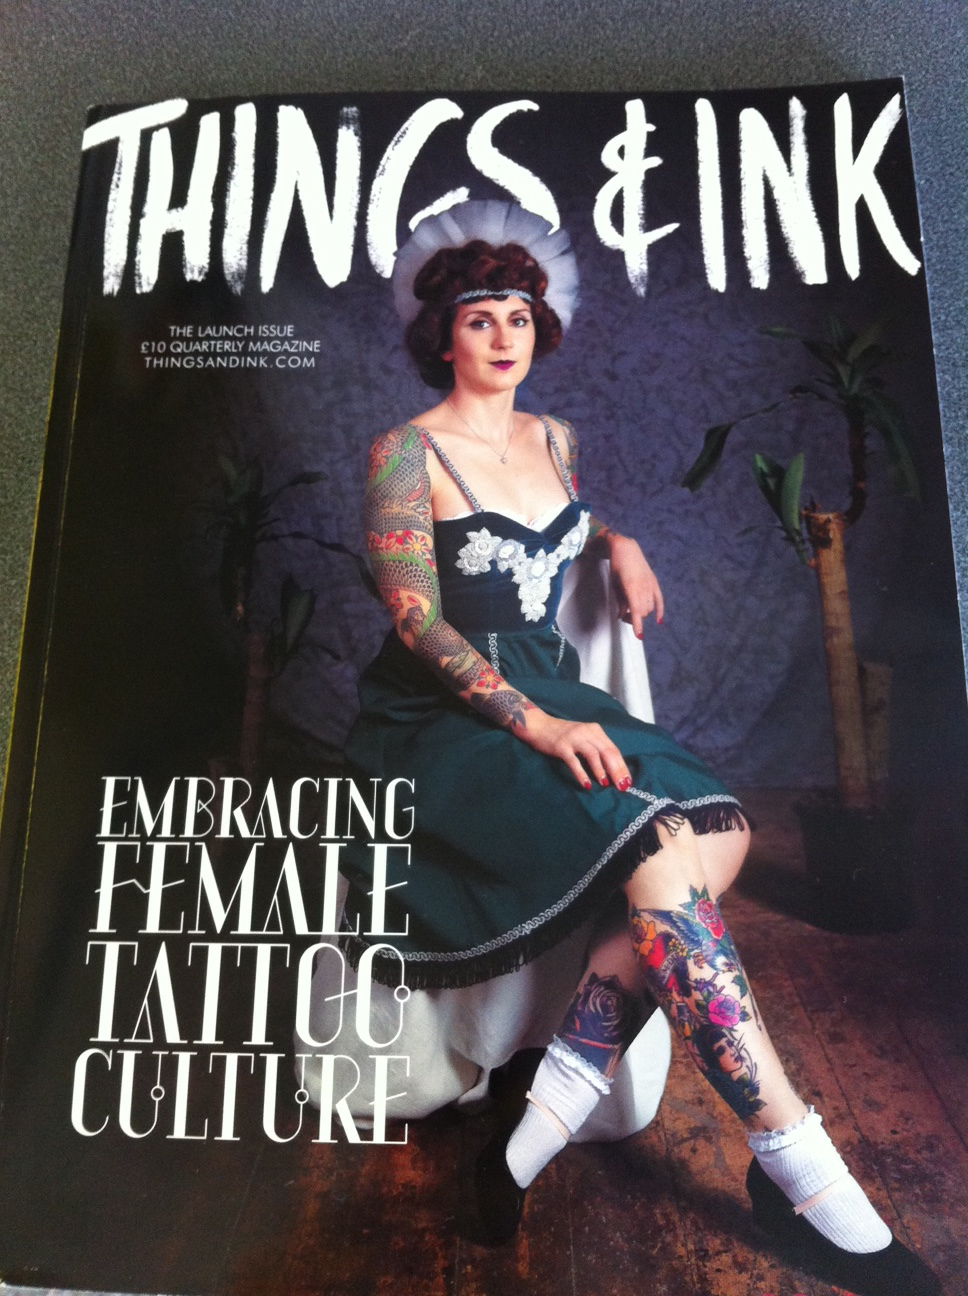 Things & Ink- a Tattoo Magazine Embracing Female Tattoo Culture- & I'm Their Home Ware Columnist